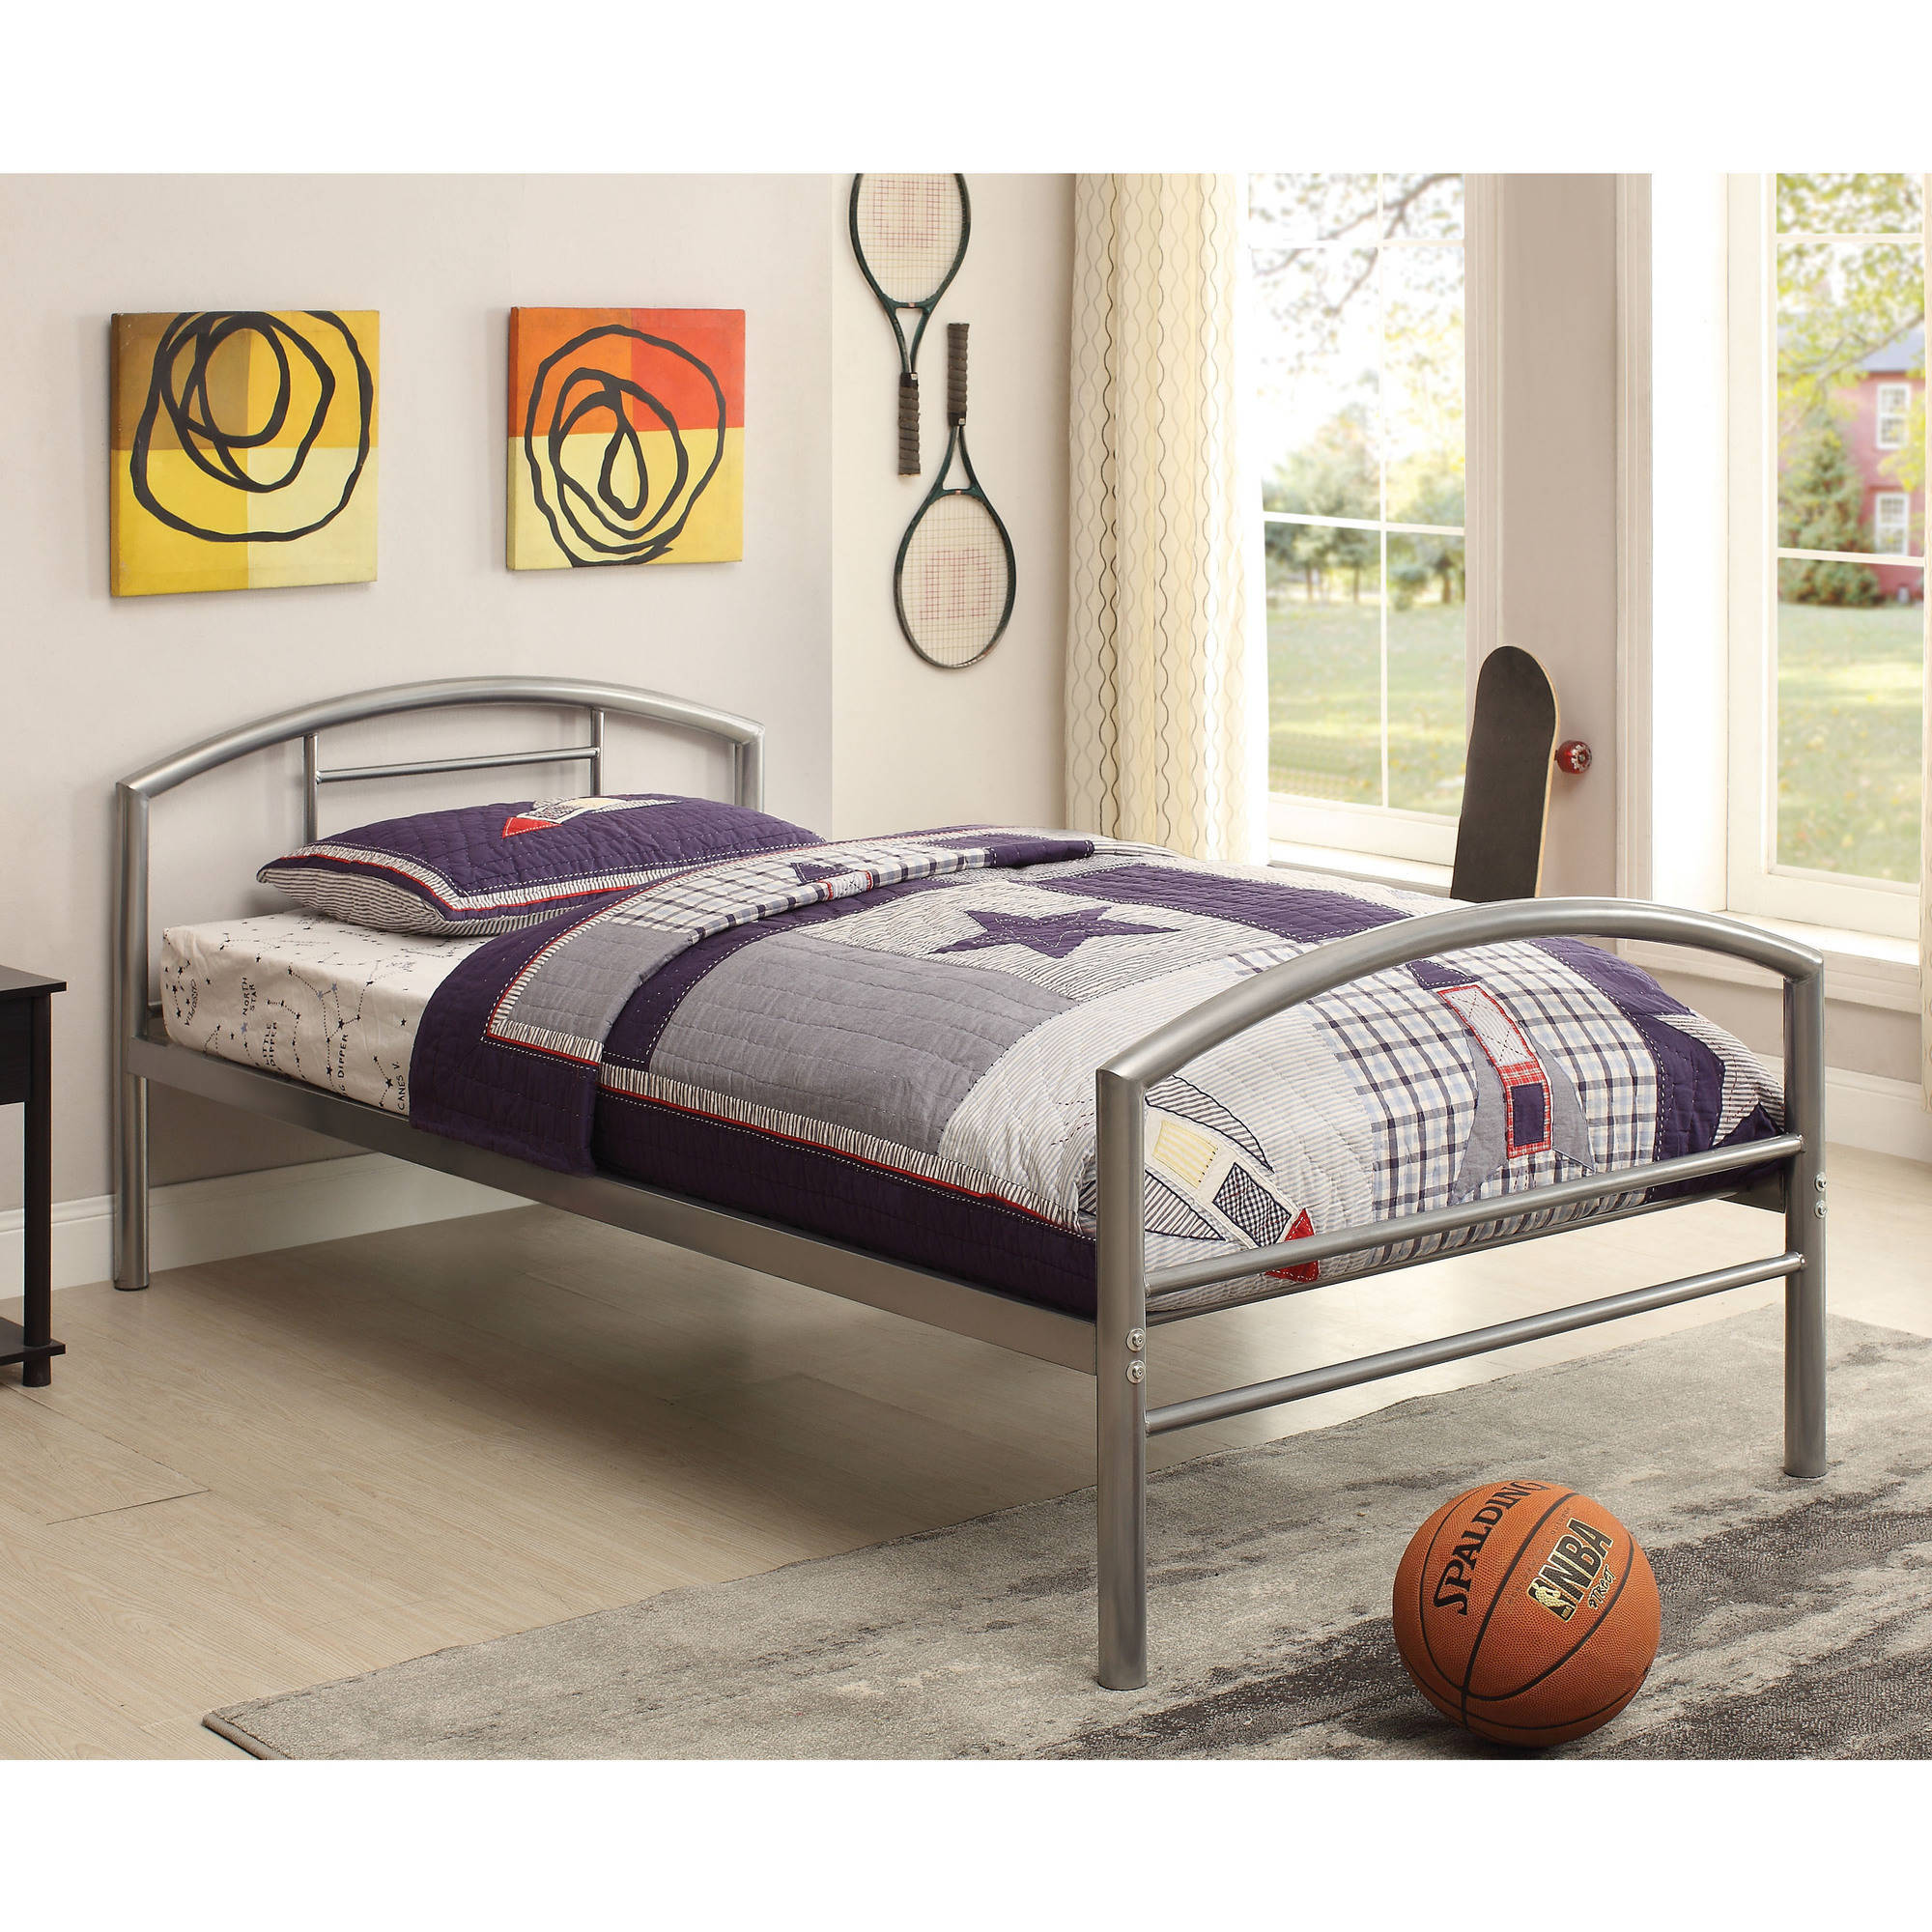 Coaster Company Youth Twin Metal Bed, Silver